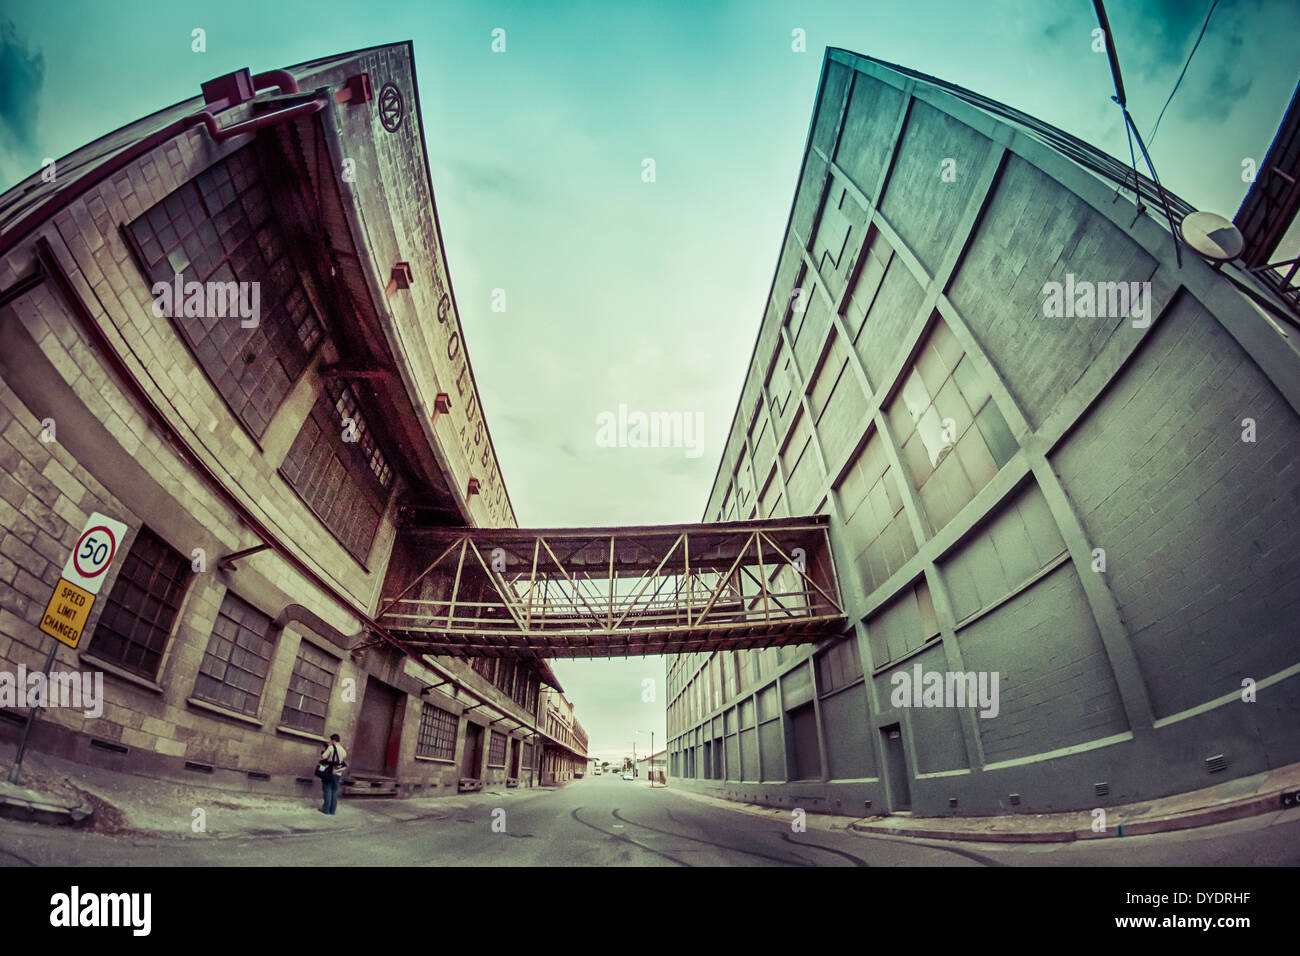 A fish-eye perspective of old warehouses in Port Adelaide, Australia. - Stock Image